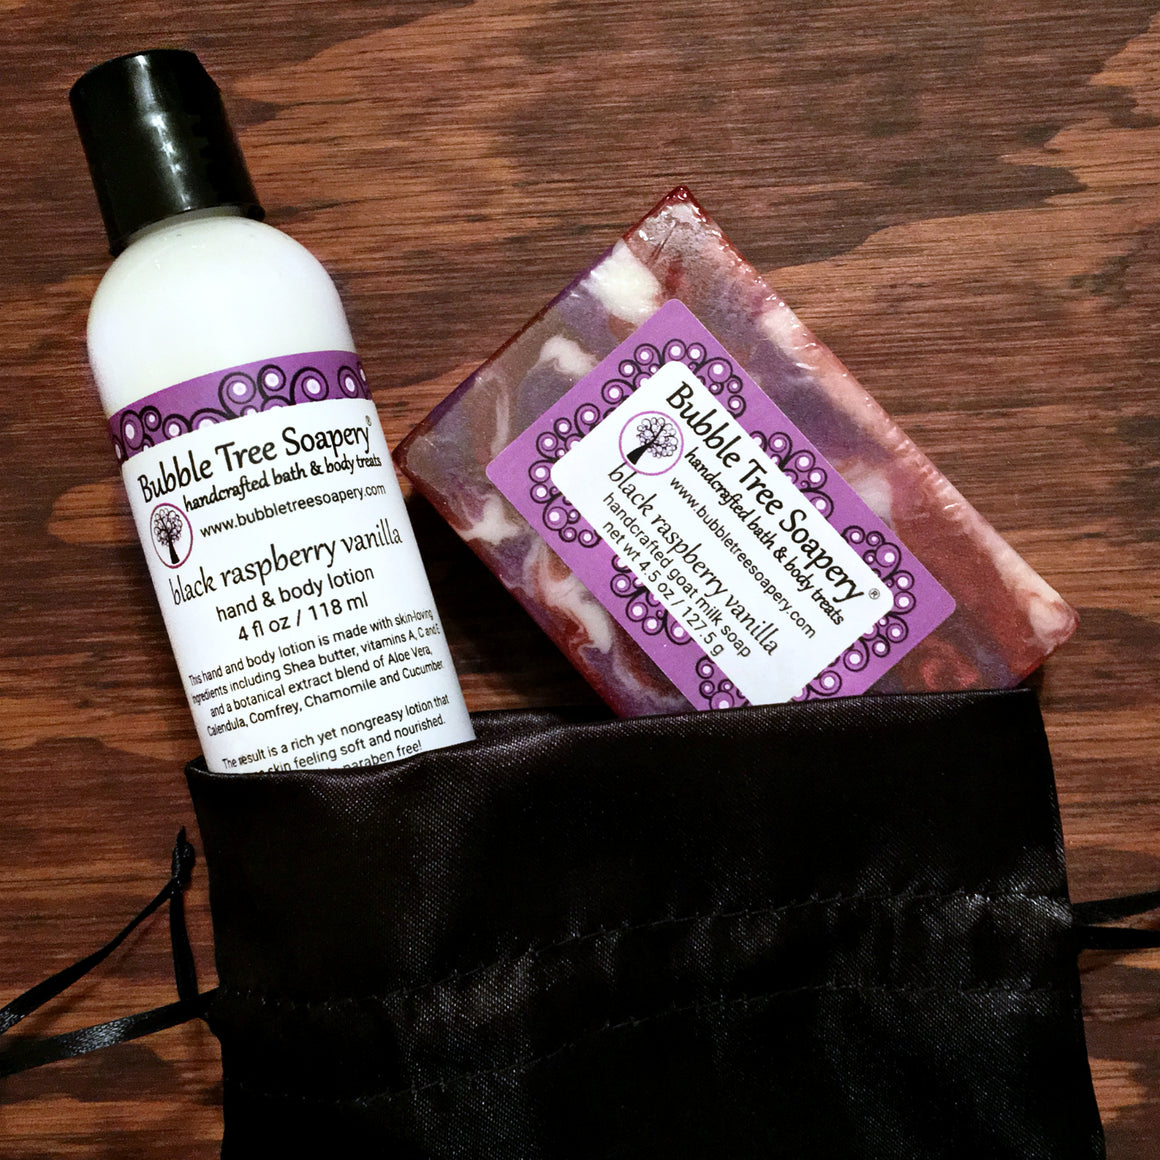 Black Raspberry Vanilla Bath Gift Set | Bubble Tree Soapery